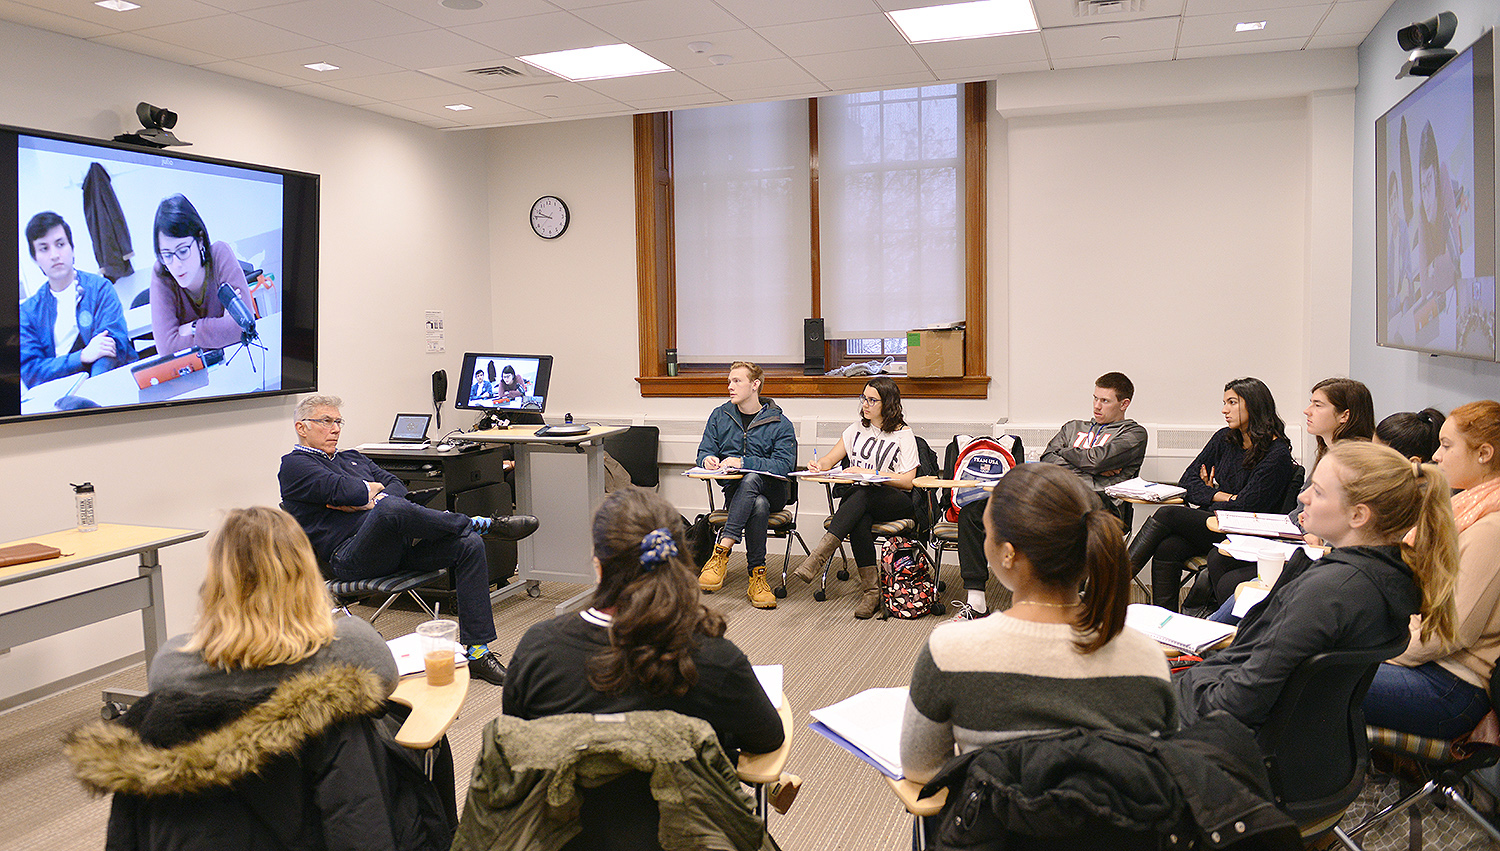 On March 28, the Spanish 258 class, taught by Antonio Gonzalez, professor of Spanish, interacted with a class at at Charles III University in Madrid, Spain over videoconferencing. (Photos by Olivia Drake)